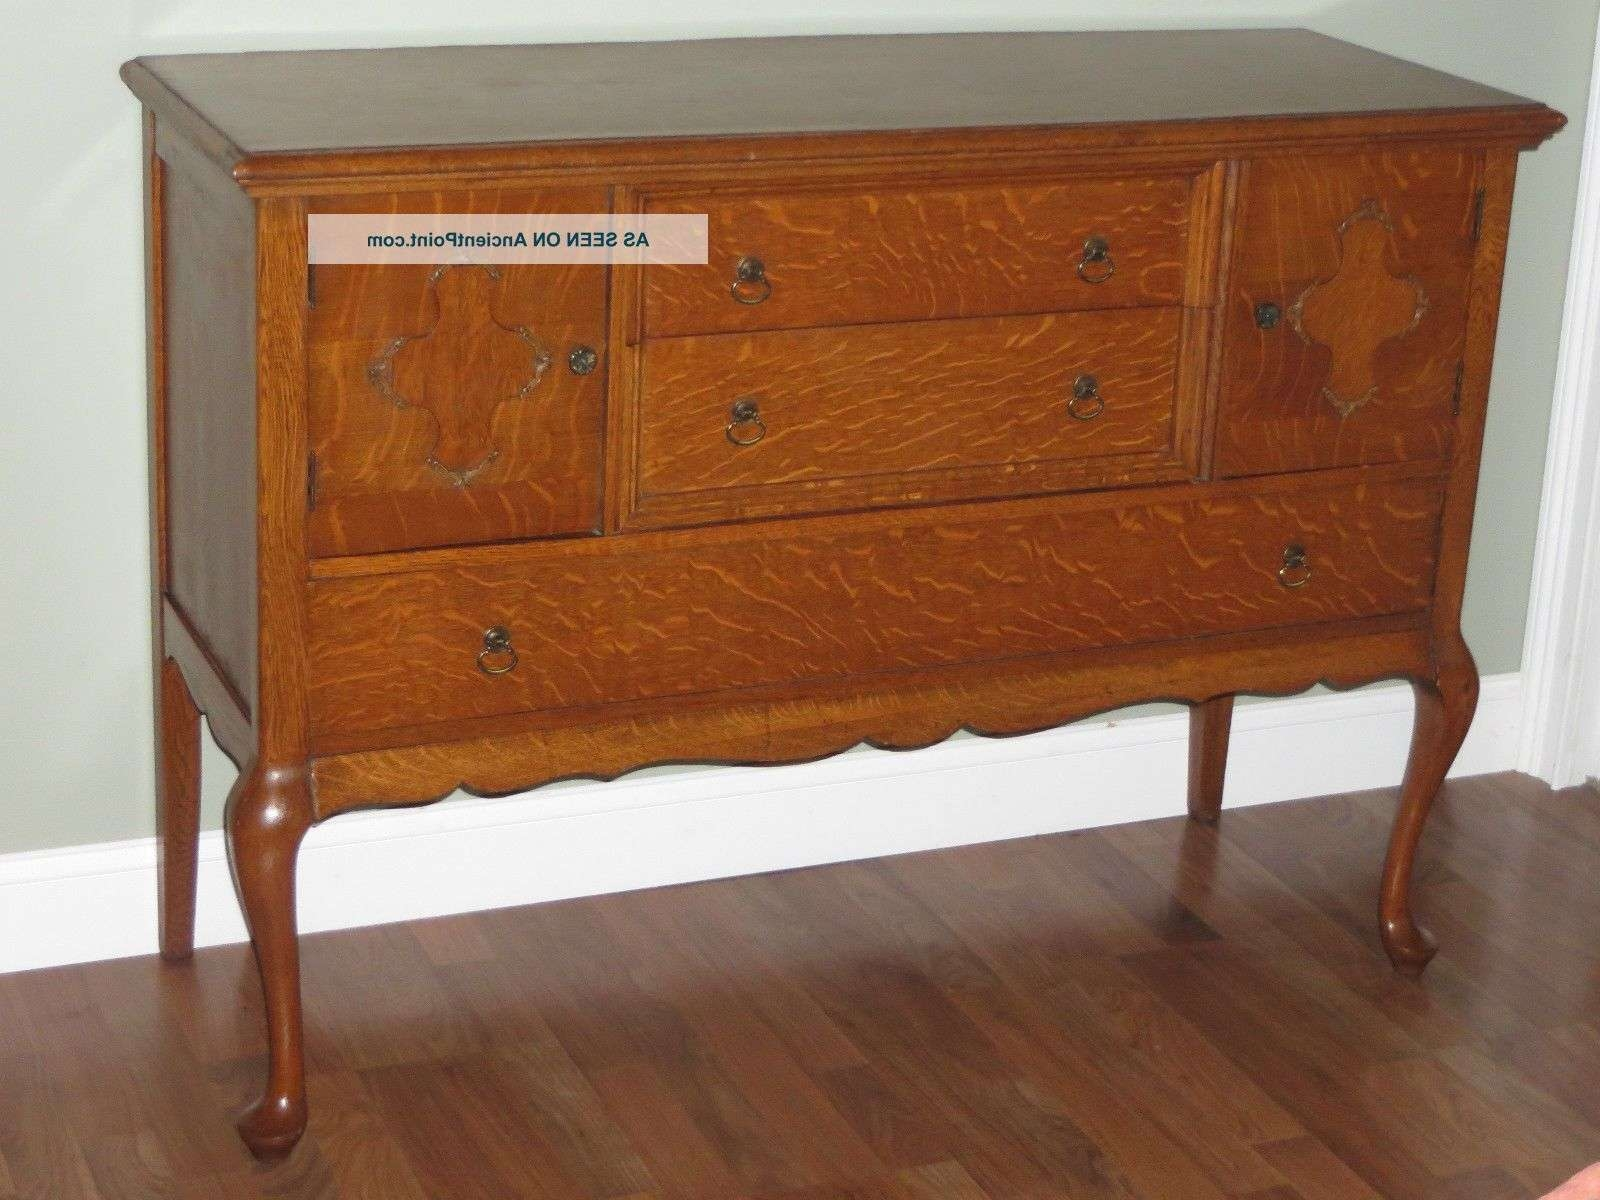 Best Of Buffet Sideboard Server – Bjdgjy With Regard To Buffet Sideboards Servers (View 12 of 20)